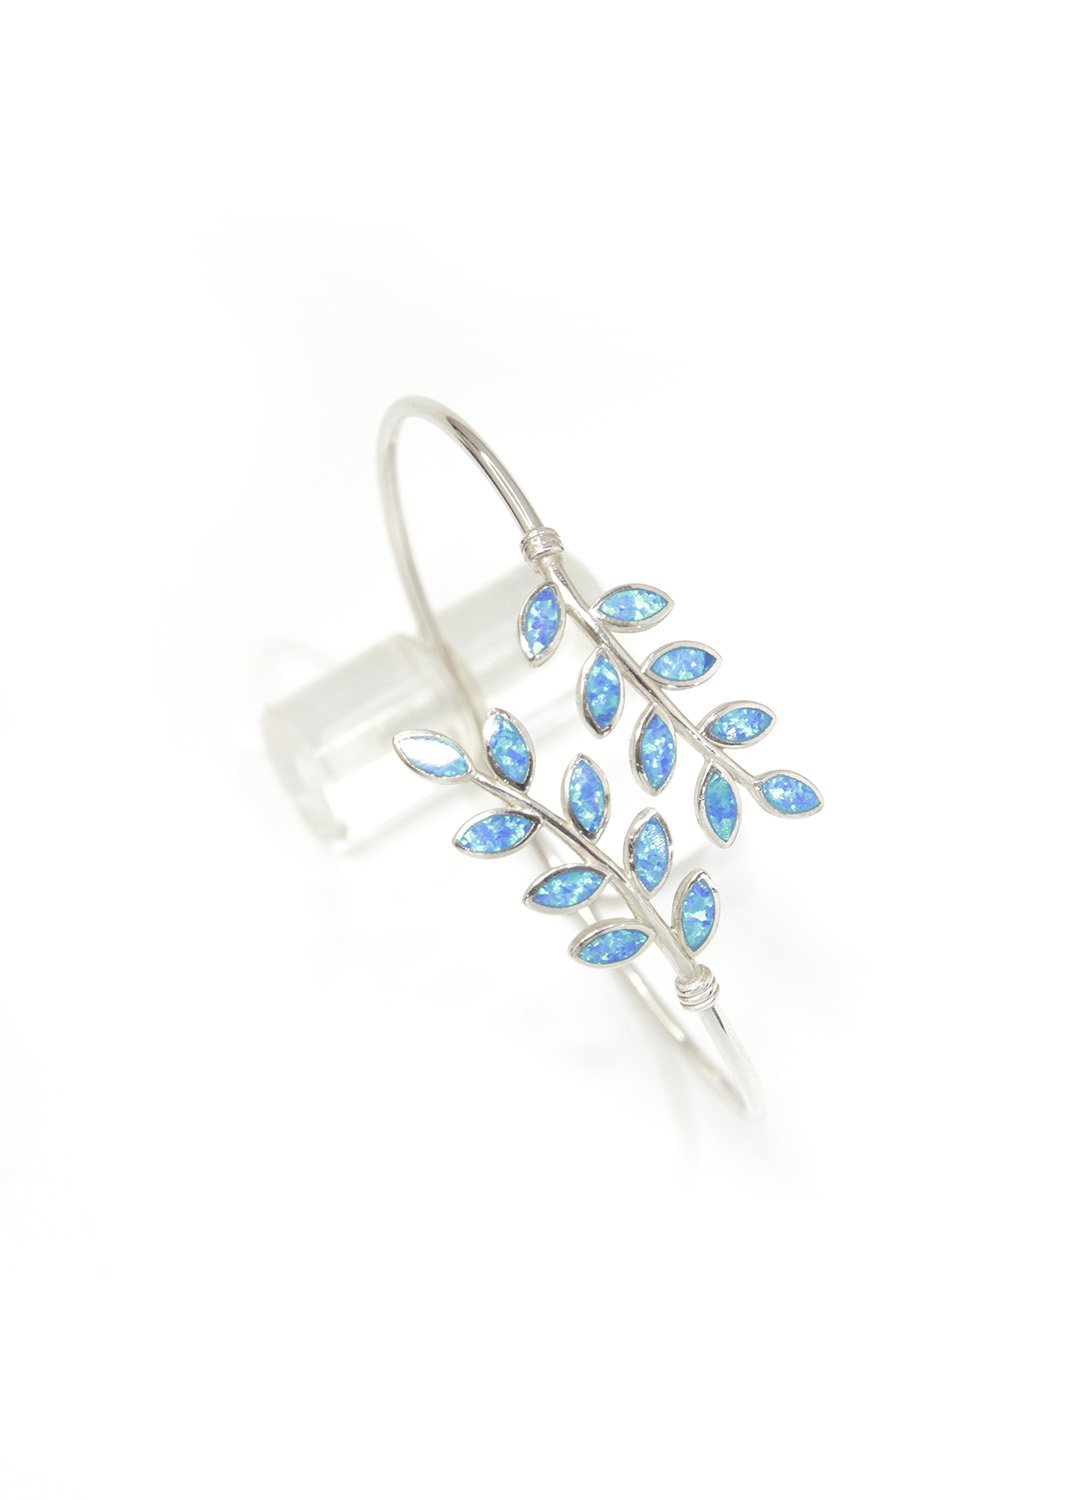 Olive branches silver cuff bracelet with opal